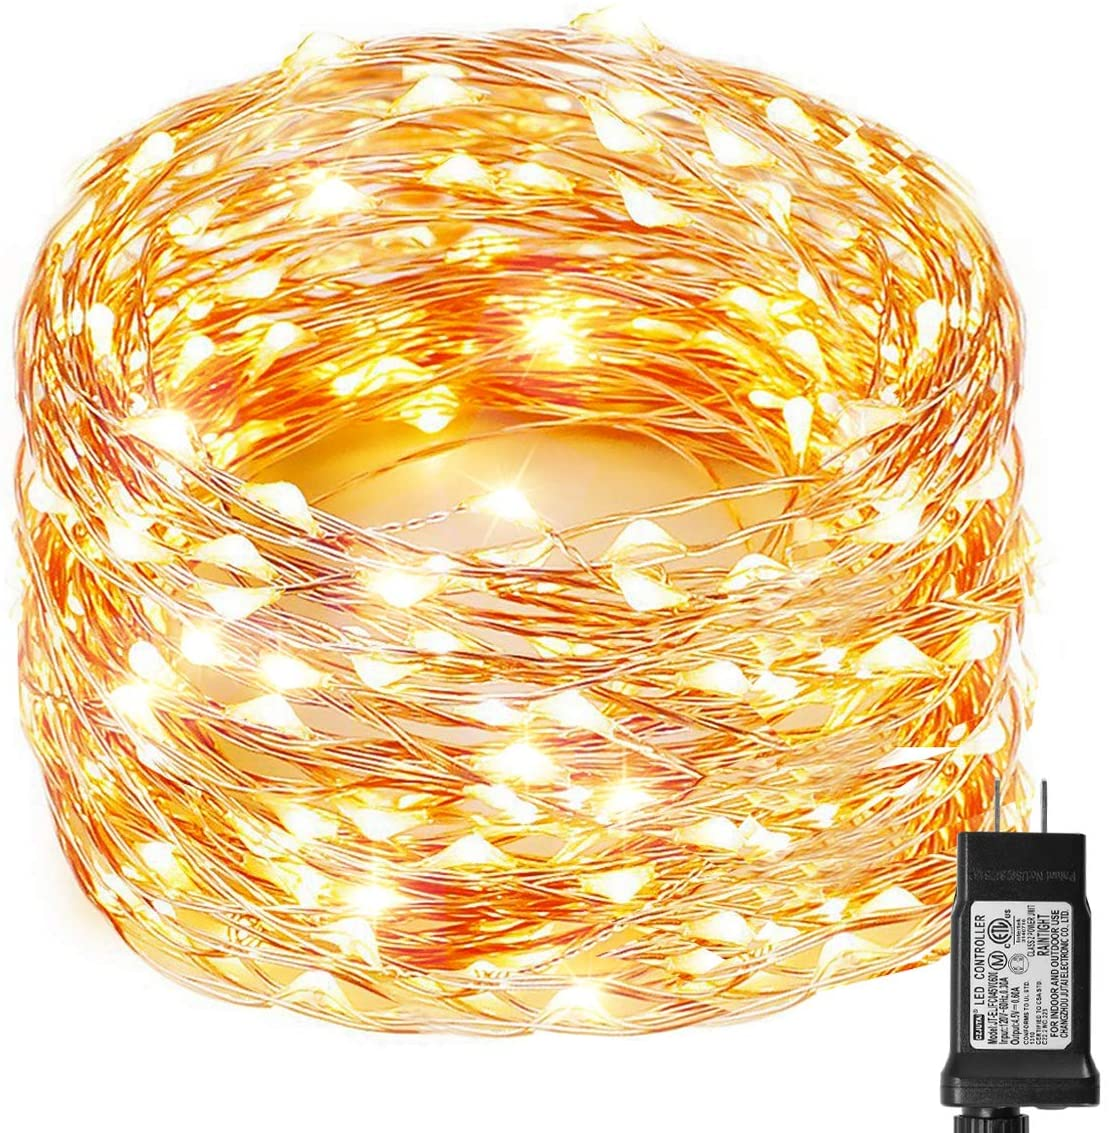 Decute 99ft 300 LEDs Twinkle String Lights Copper Wire Christmas Fairy Lights, 8 Modes Starry Lighting with UL Certified for Party Wedding Bedroom Christmas Tree, Warm White